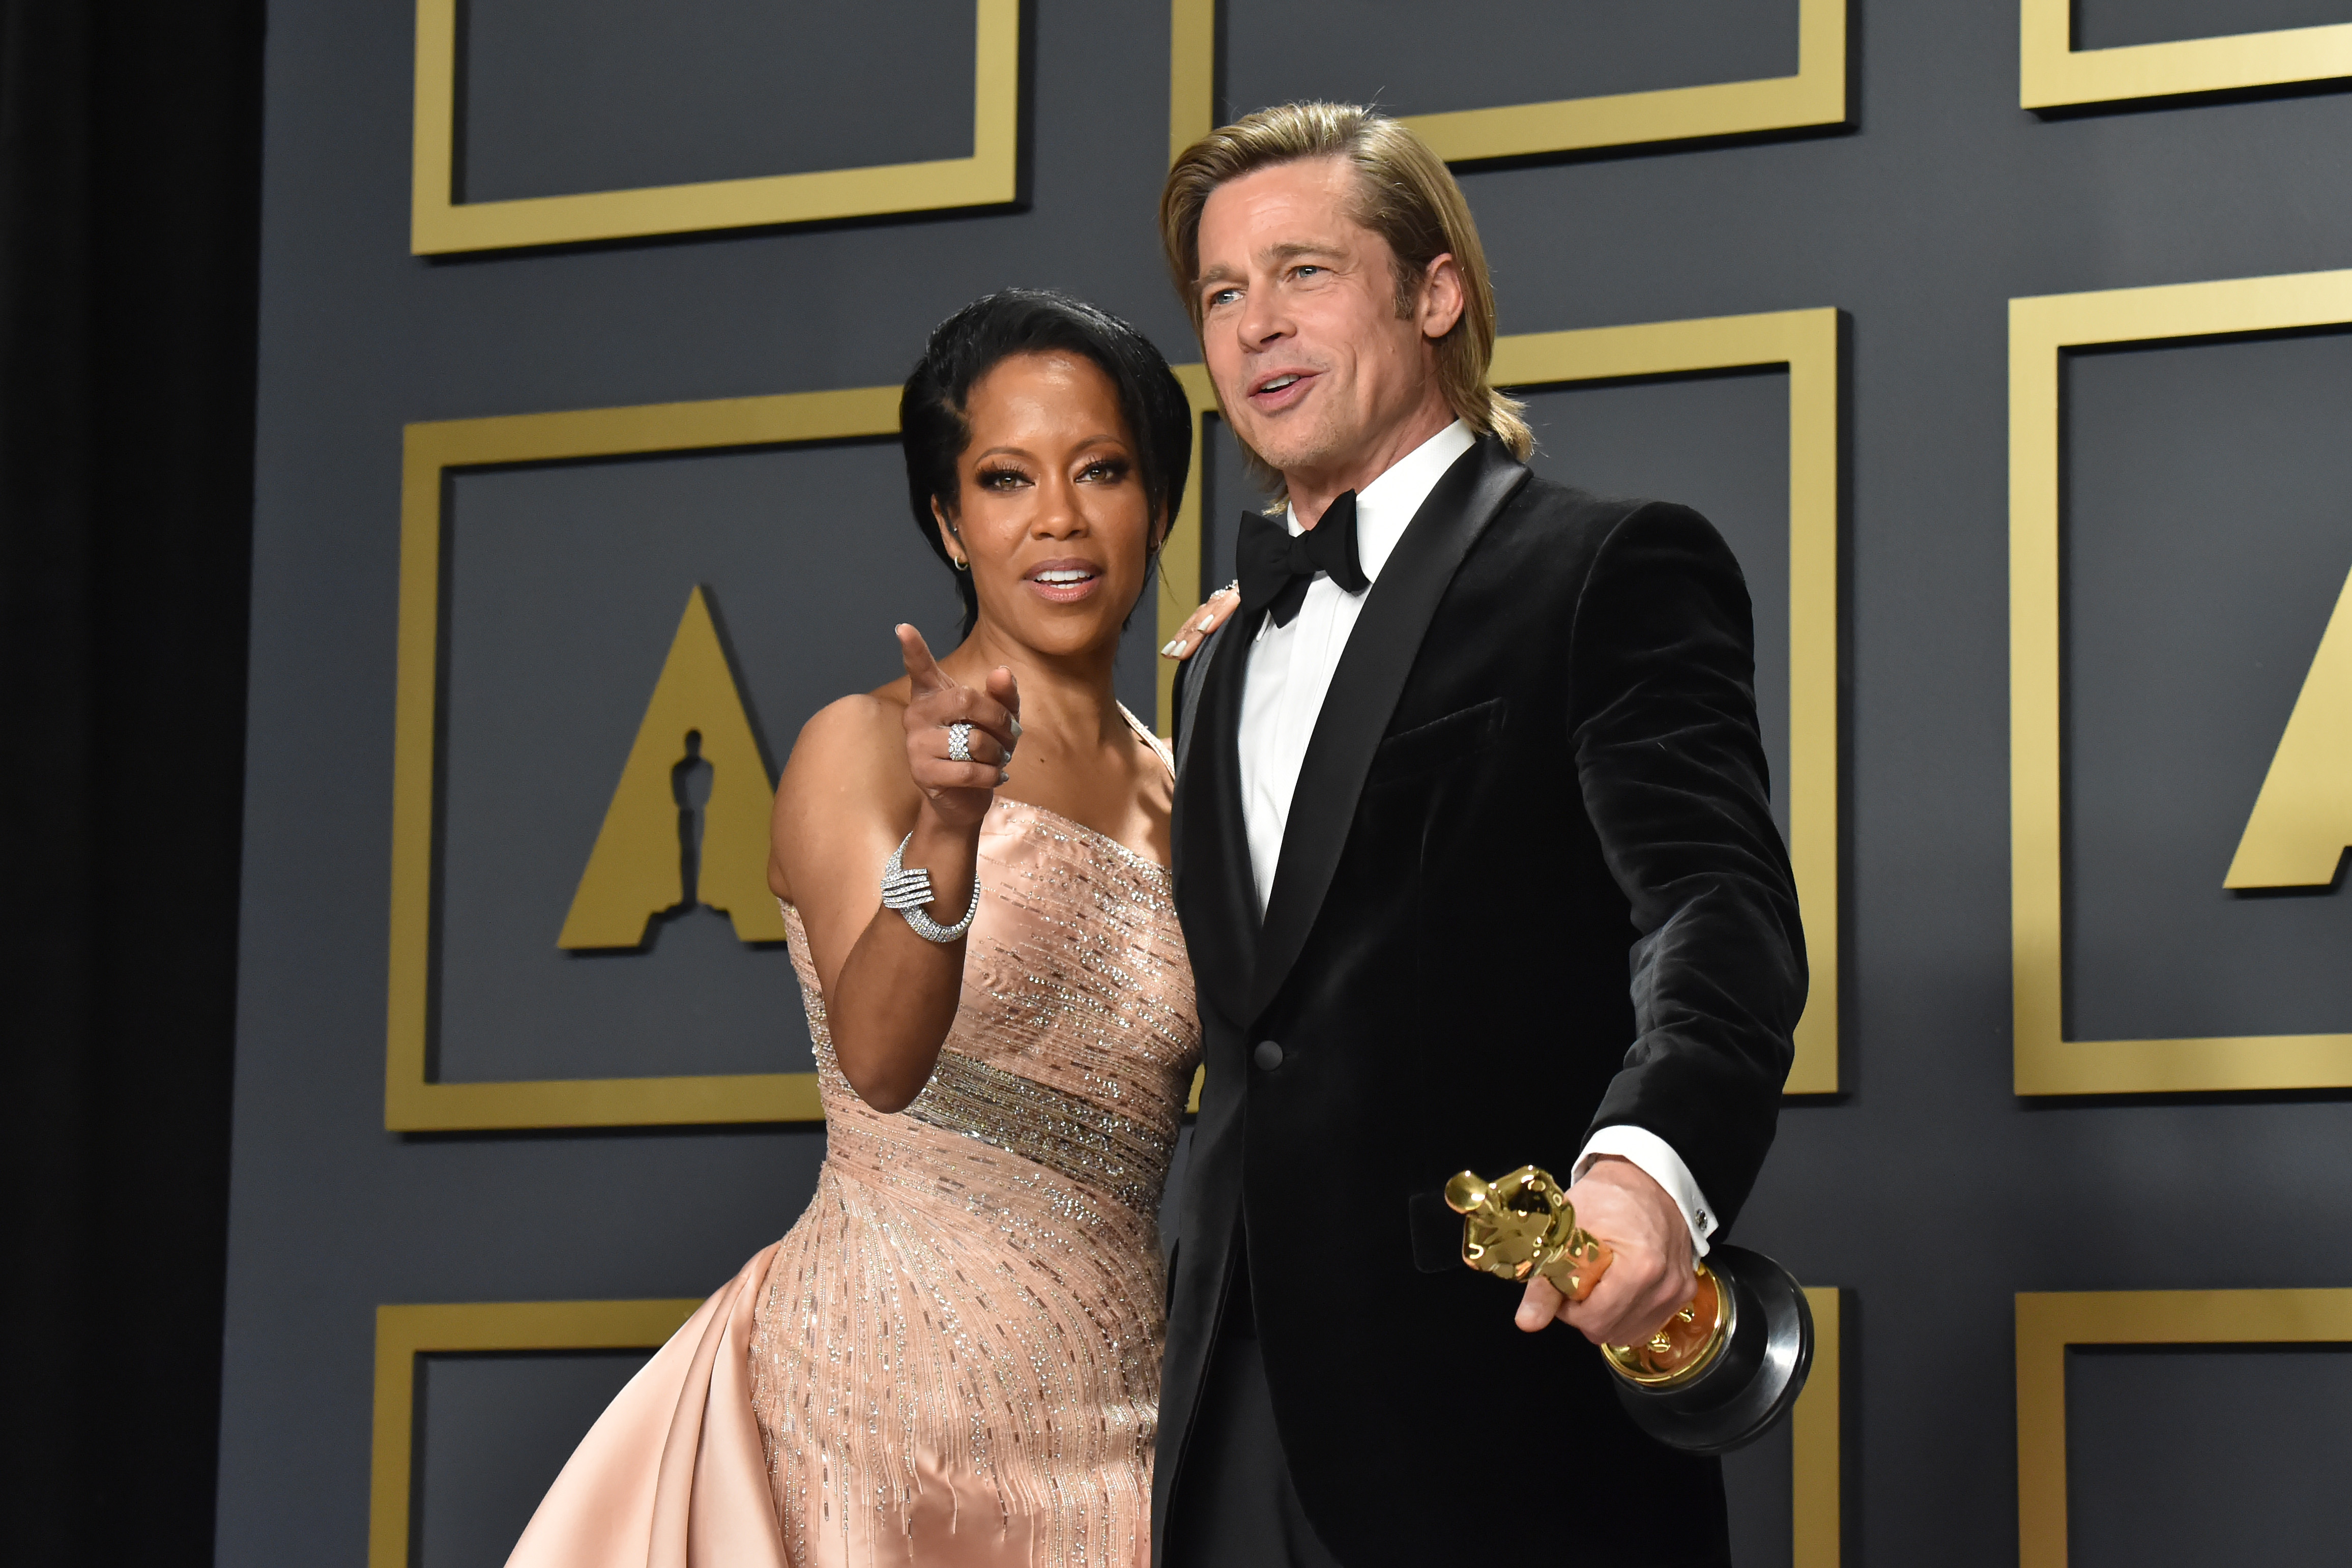 """Regina King and Brad Pitt, winner of the Actor in a Supporting Role award for """"Once Upon a Time…in Hollywood,"""" pose in the press room during the 92nd Annual Academy Awards at Hollywood and Highland on February 09, 2020 in Hollywood, California. (Photo by Jeff Kravitz/FilmMagic)"""